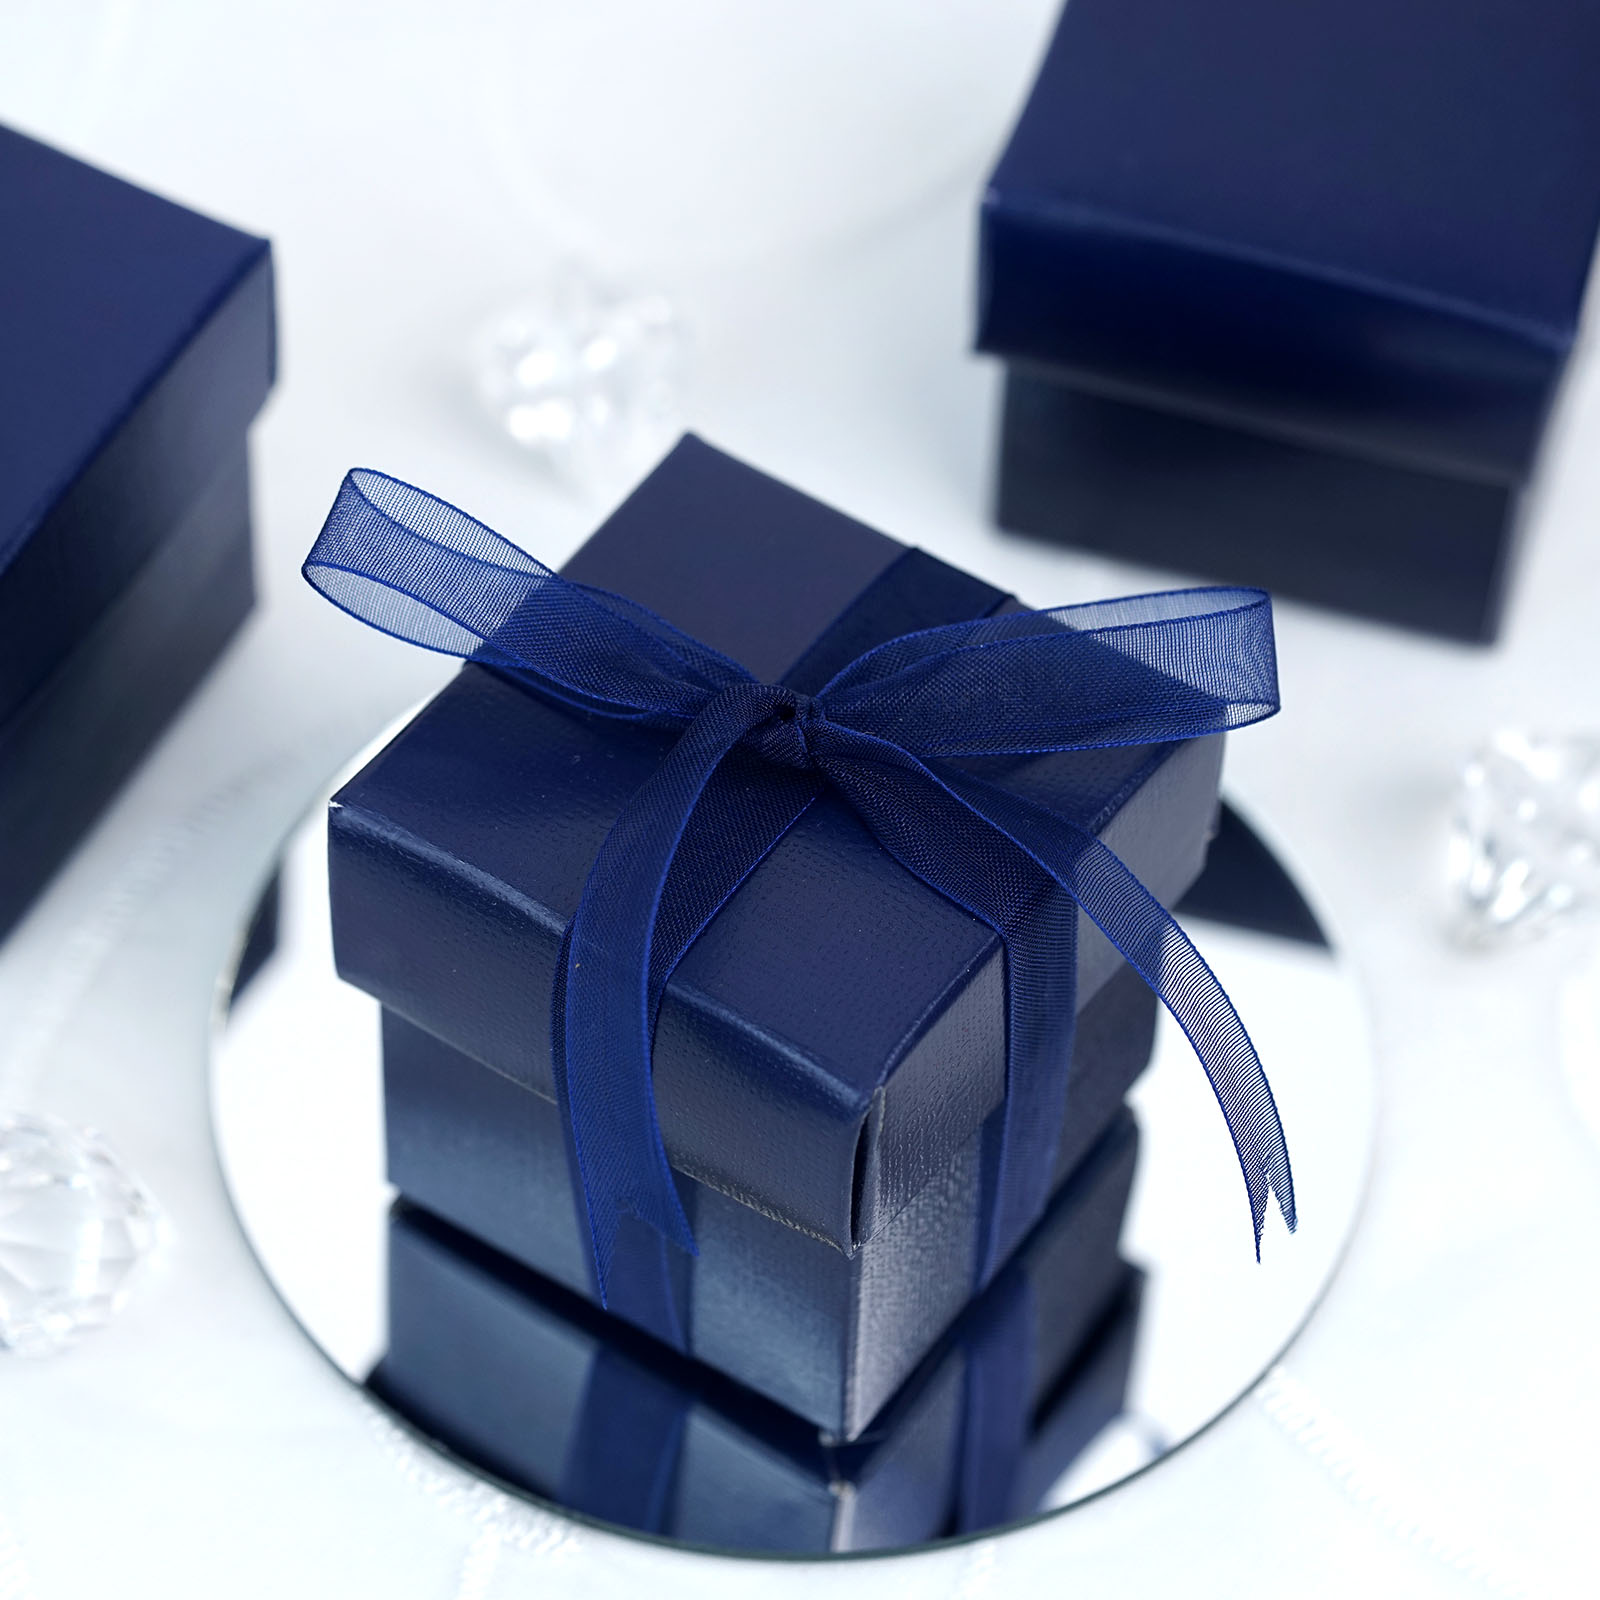 100 2x2 Quot With Lids Wedding Favors Gift Boxes With